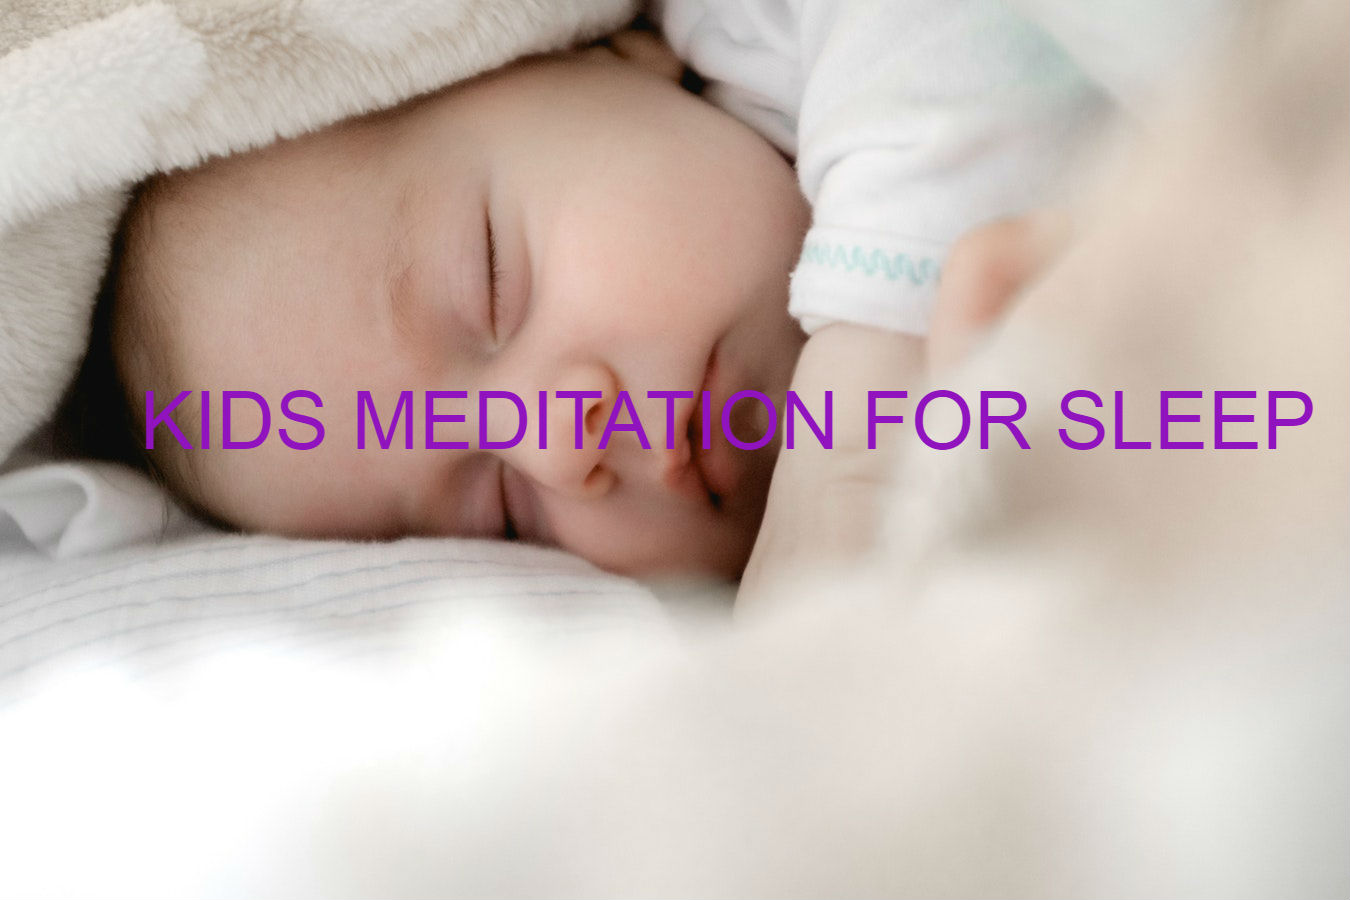 KIDS MEDITATION FOR SLEEP: How Beneficial is it?